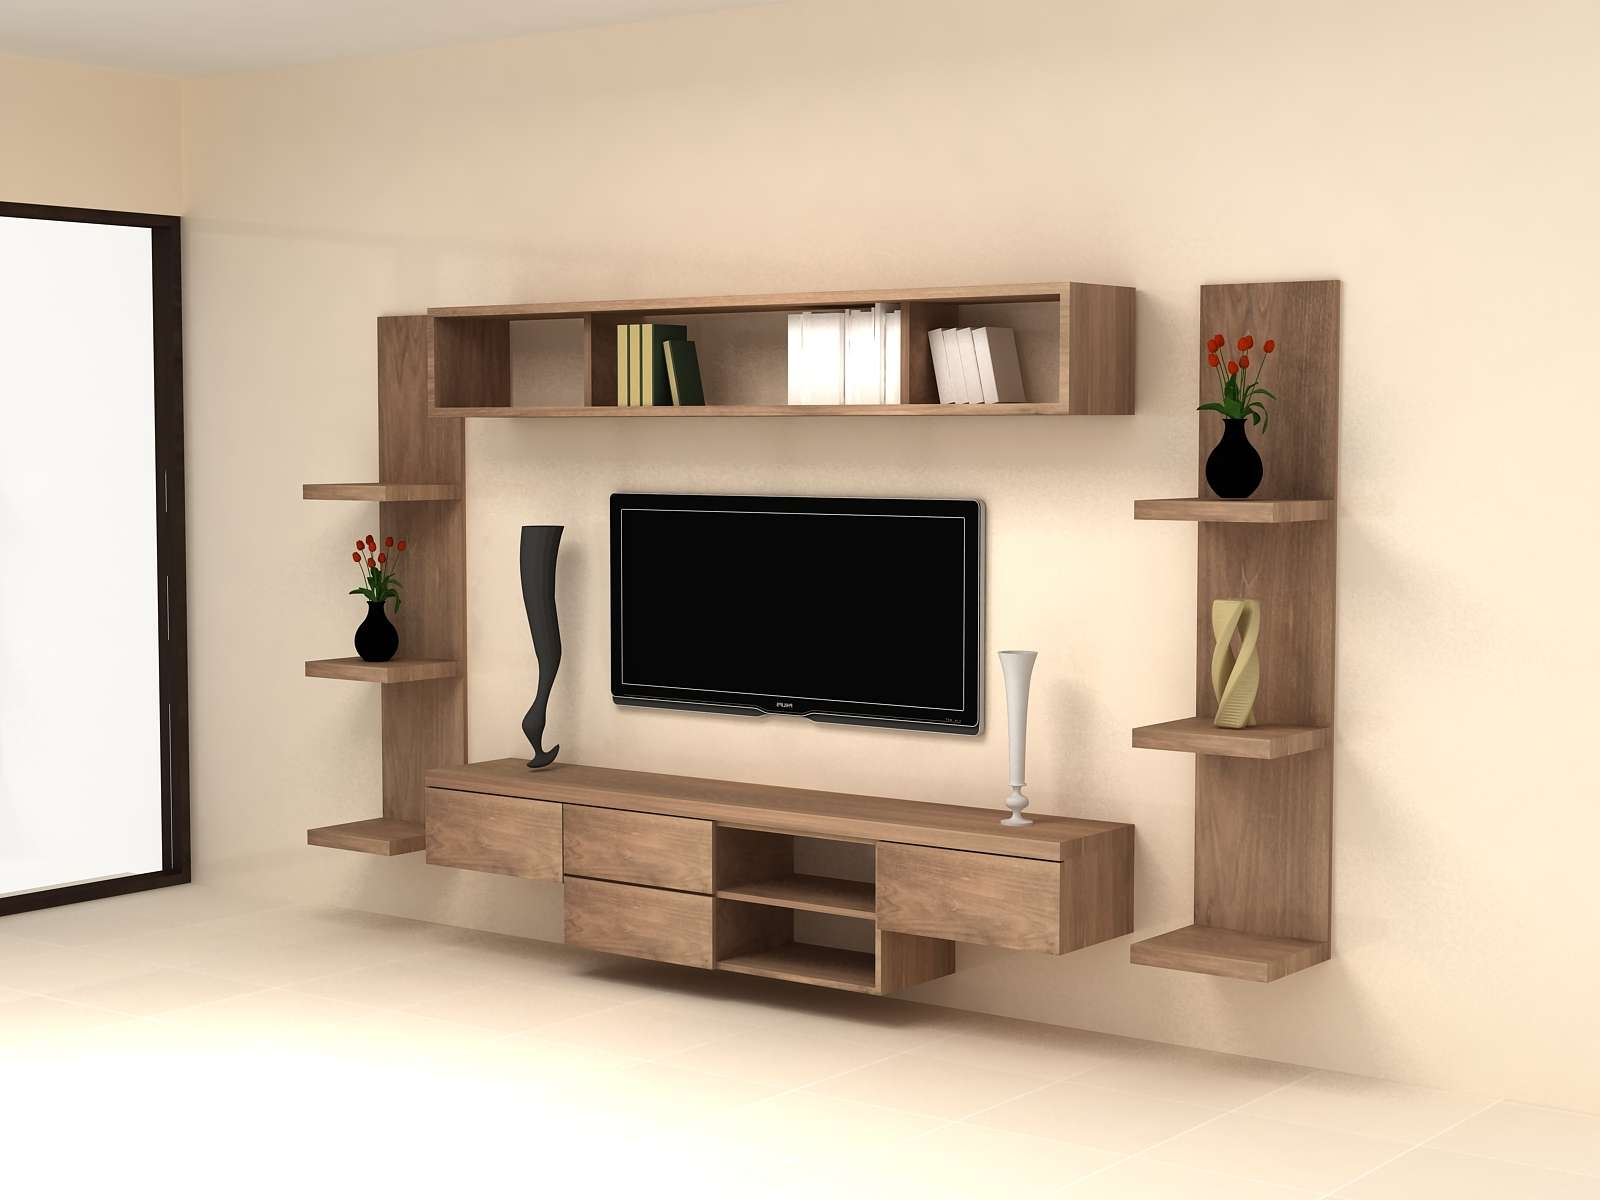 Modern Tv Cabinet Designs For Living Room Tags : Wall Cupboards Within Baby Proof Contemporary Tv Cabinets (View 16 of 20)